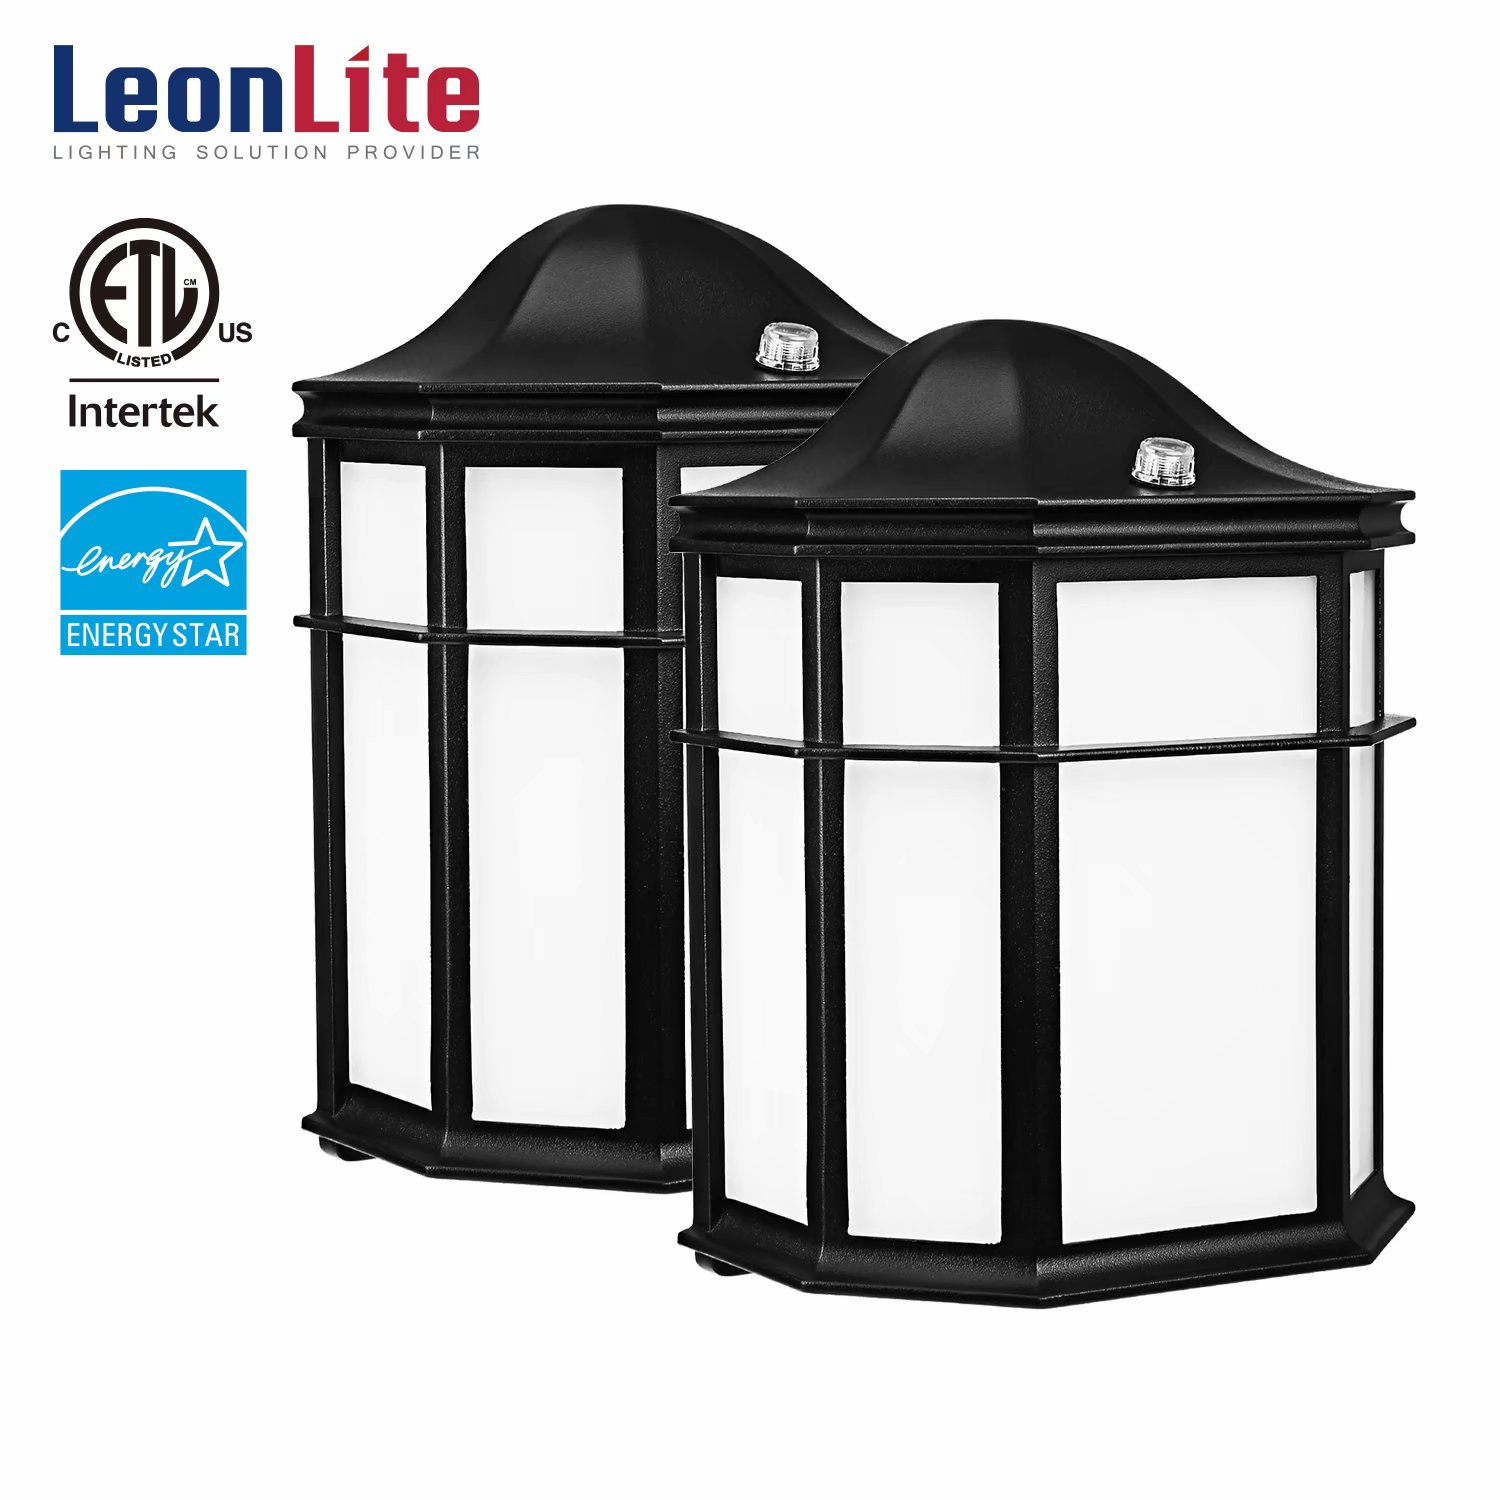 LEONLITE 2 Pack 14W LED Outdoor Wall Lights, Outdoor Exterior Wall Lantern, 5000K Daylight